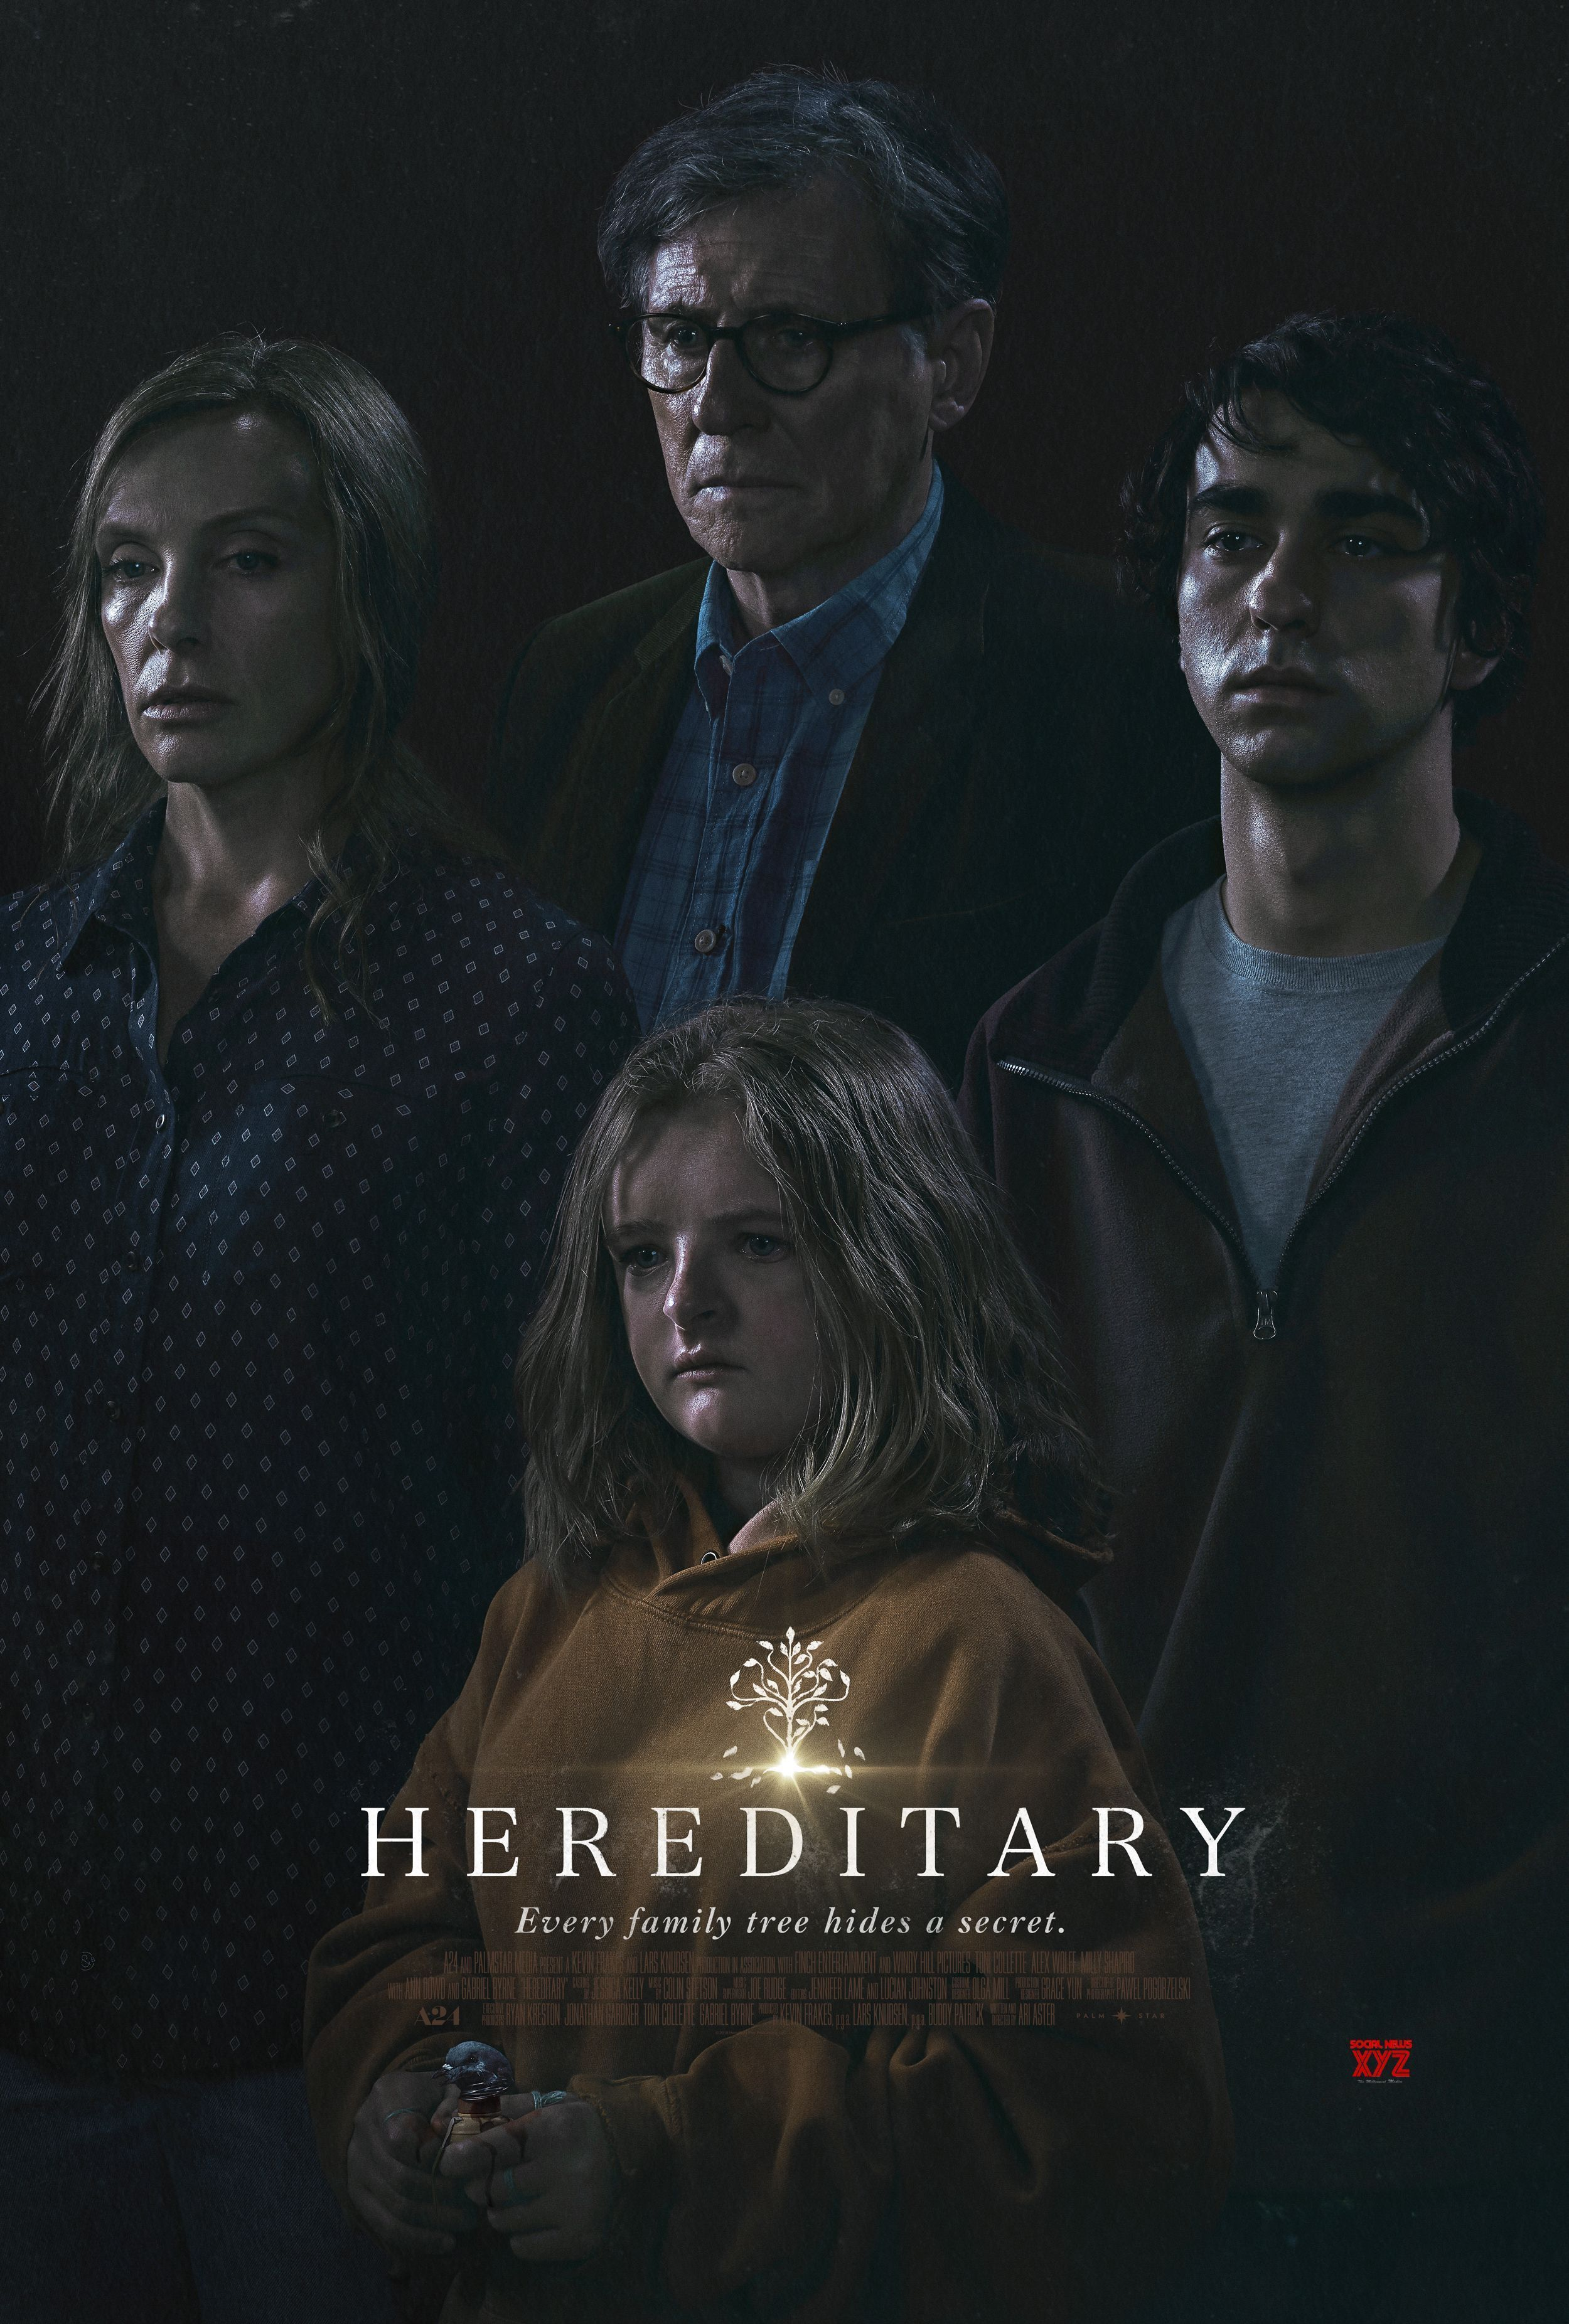 You Can't Choose Family: A Review of Hereditary (2018